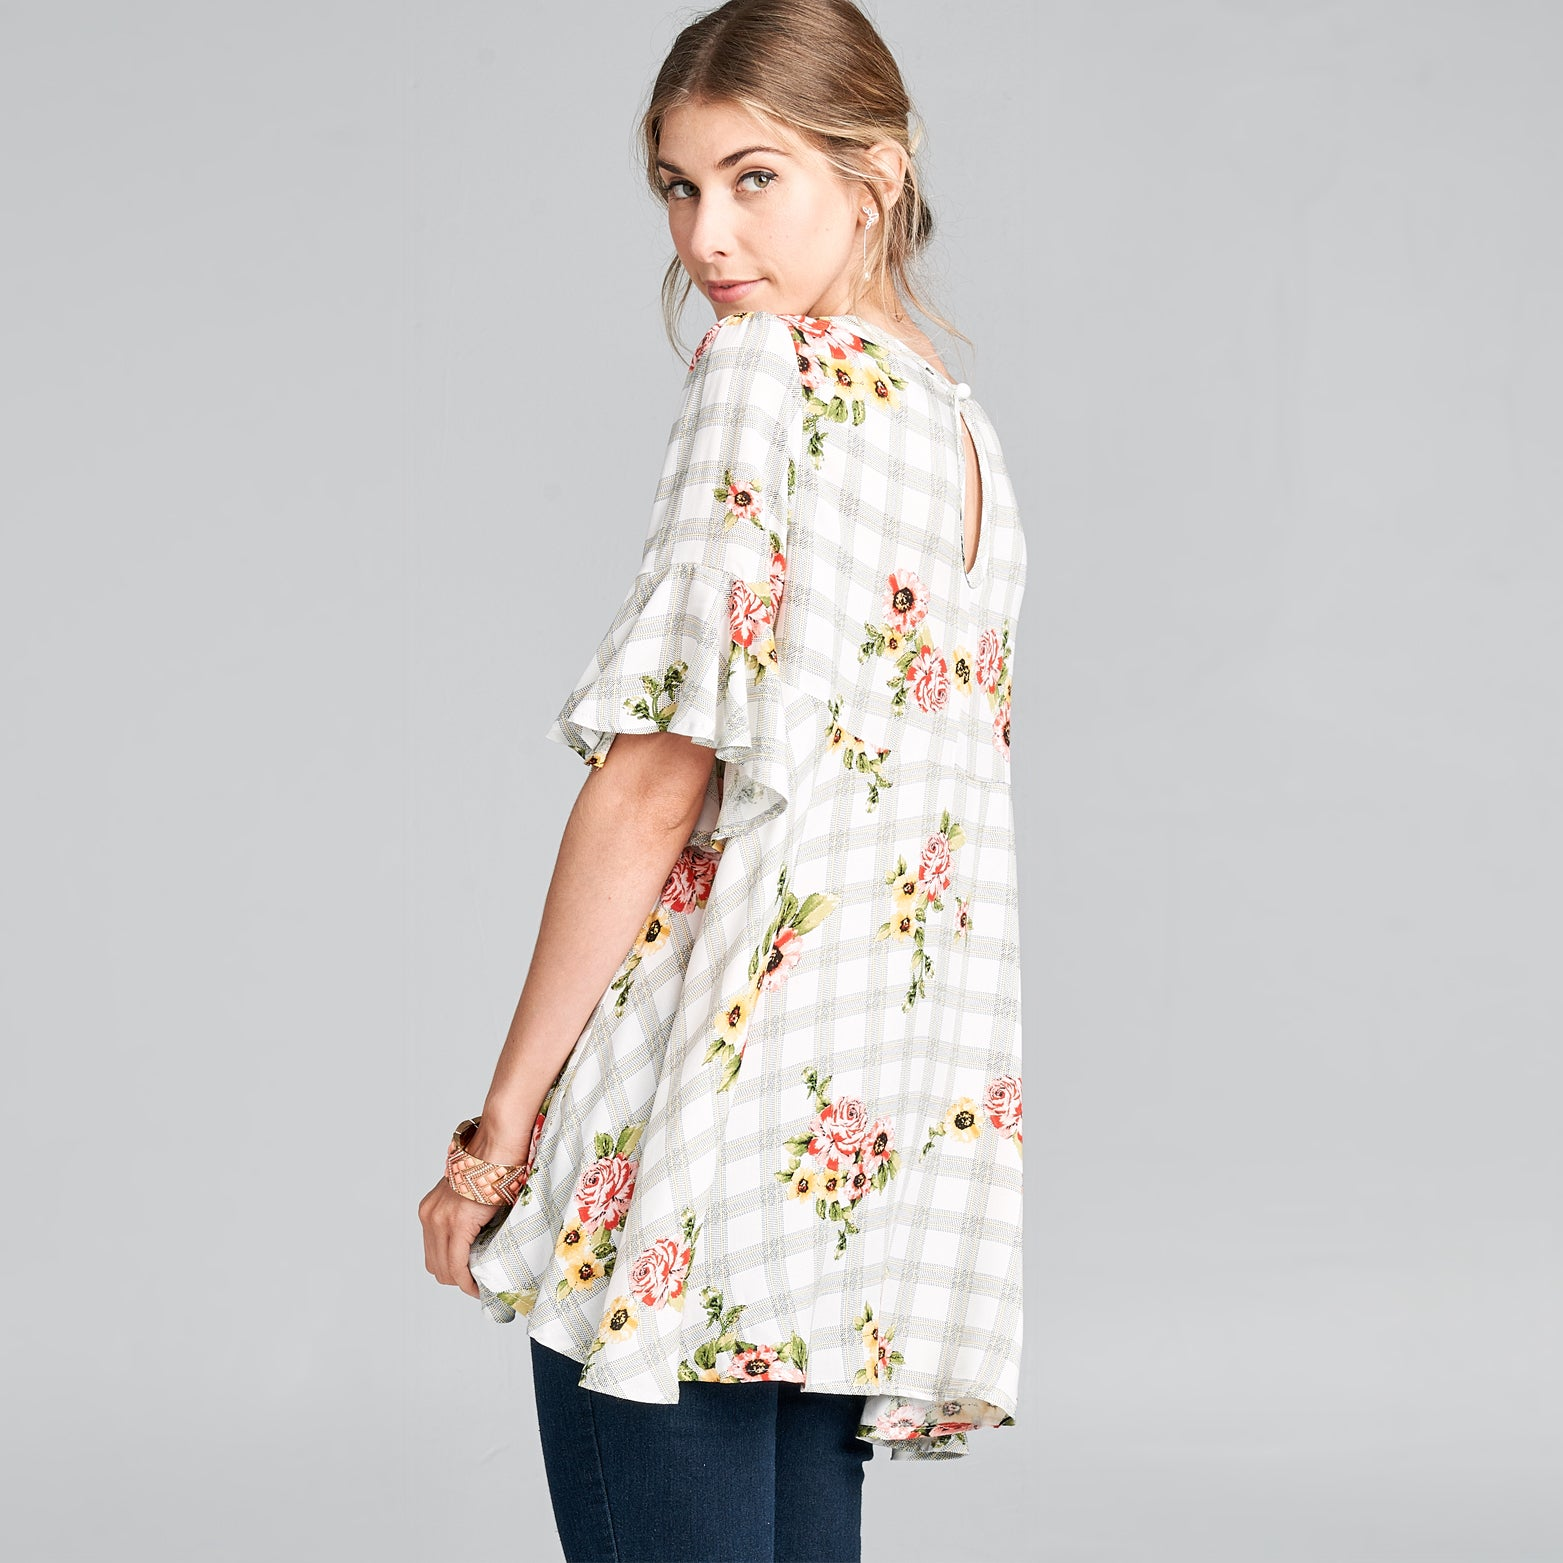 Floral Plaid Swing Top